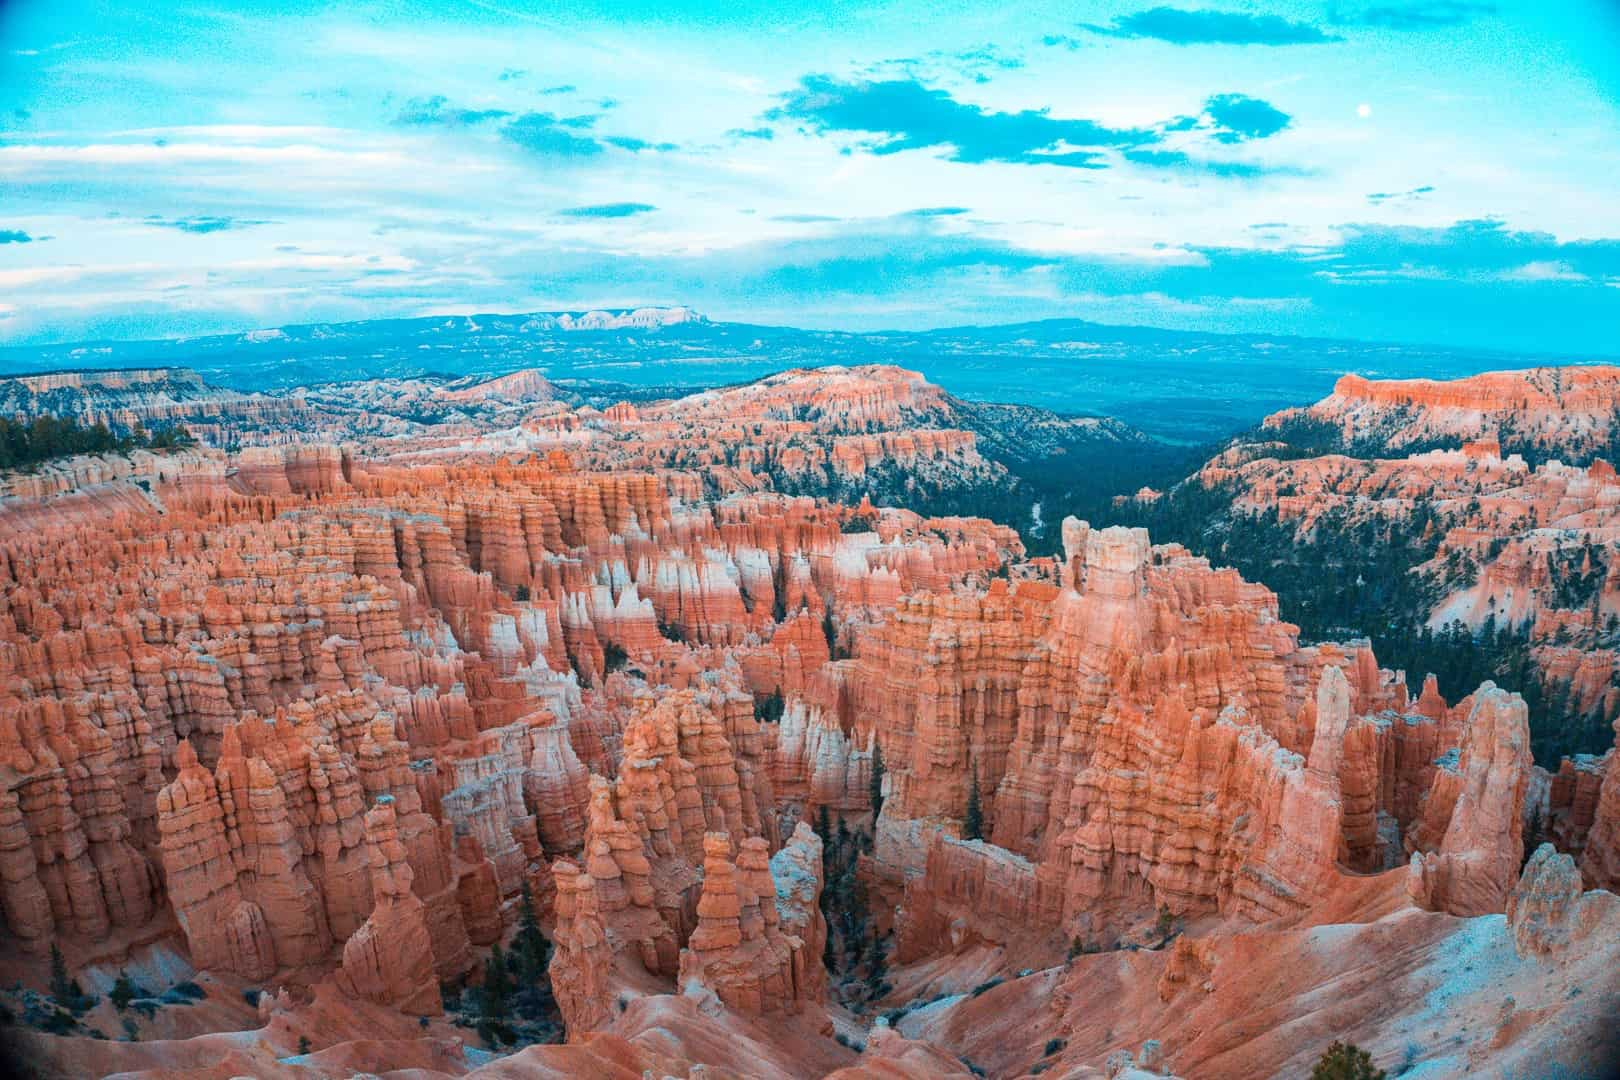 Hiking Fairyland Loop in Bryce Canyon National Park